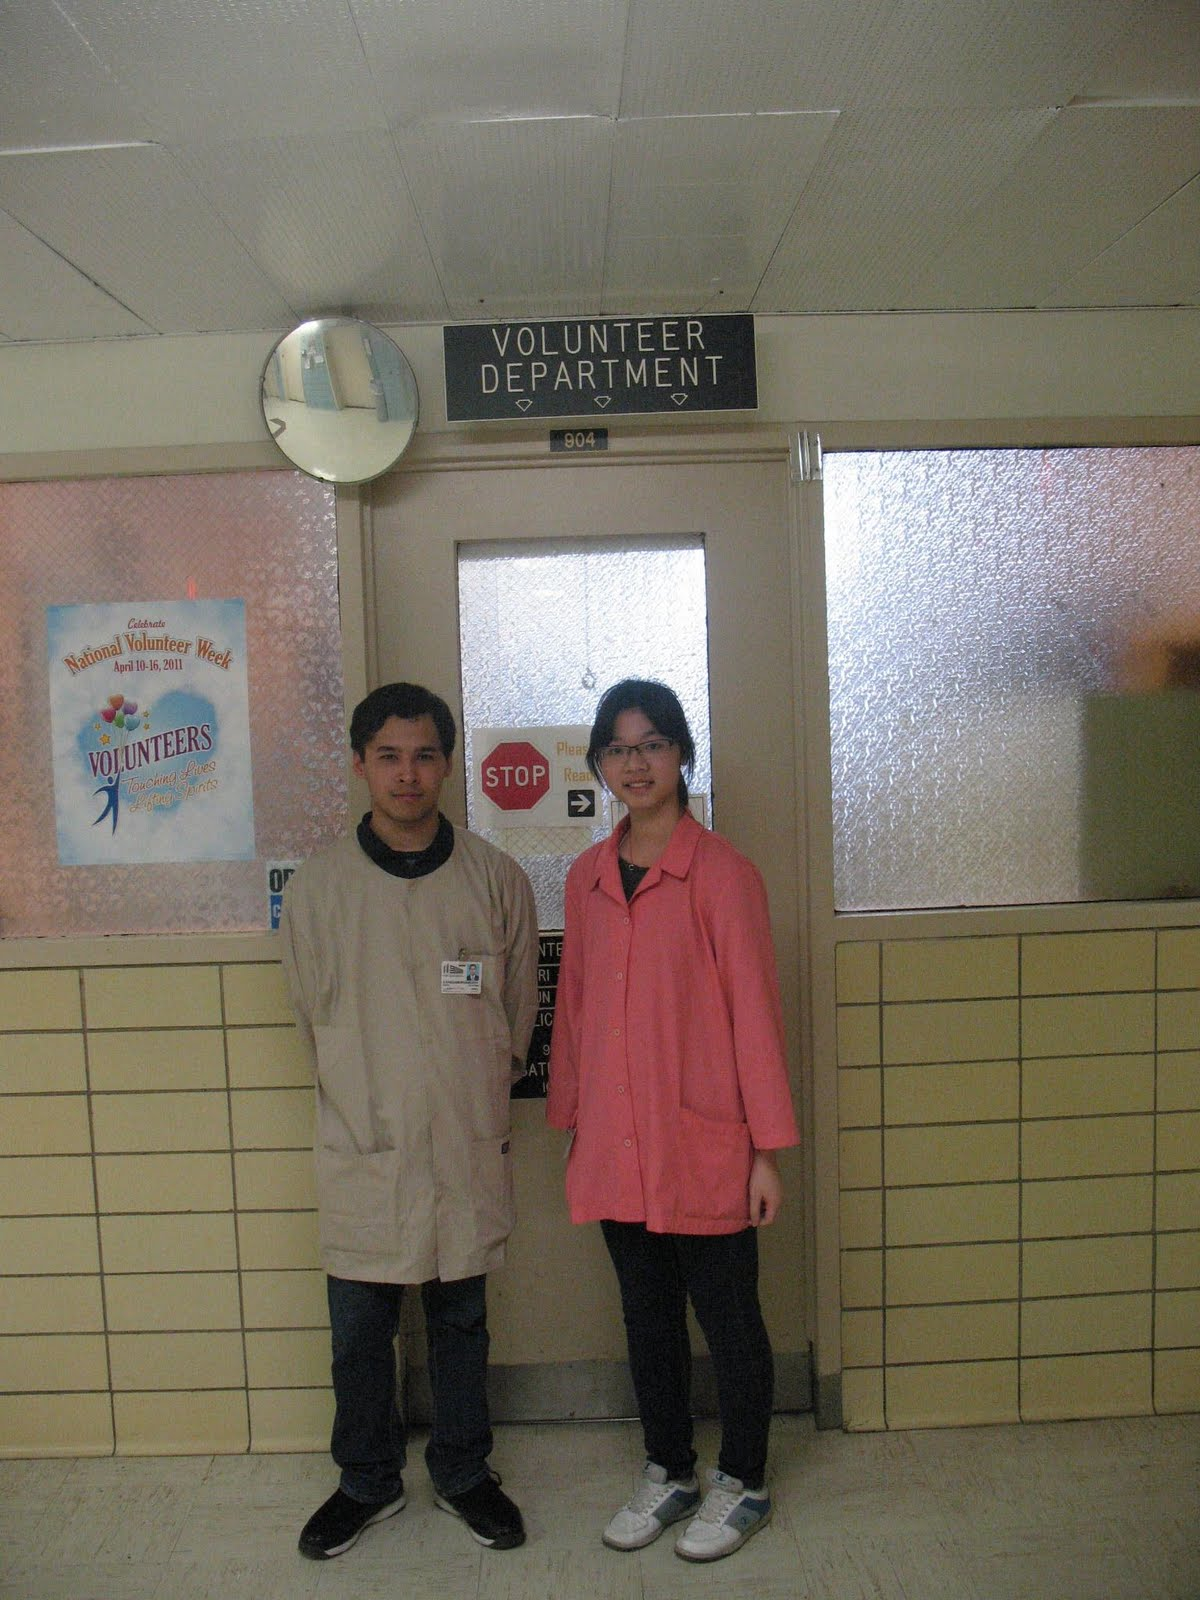 Coney Island Hospital Volunteer Number